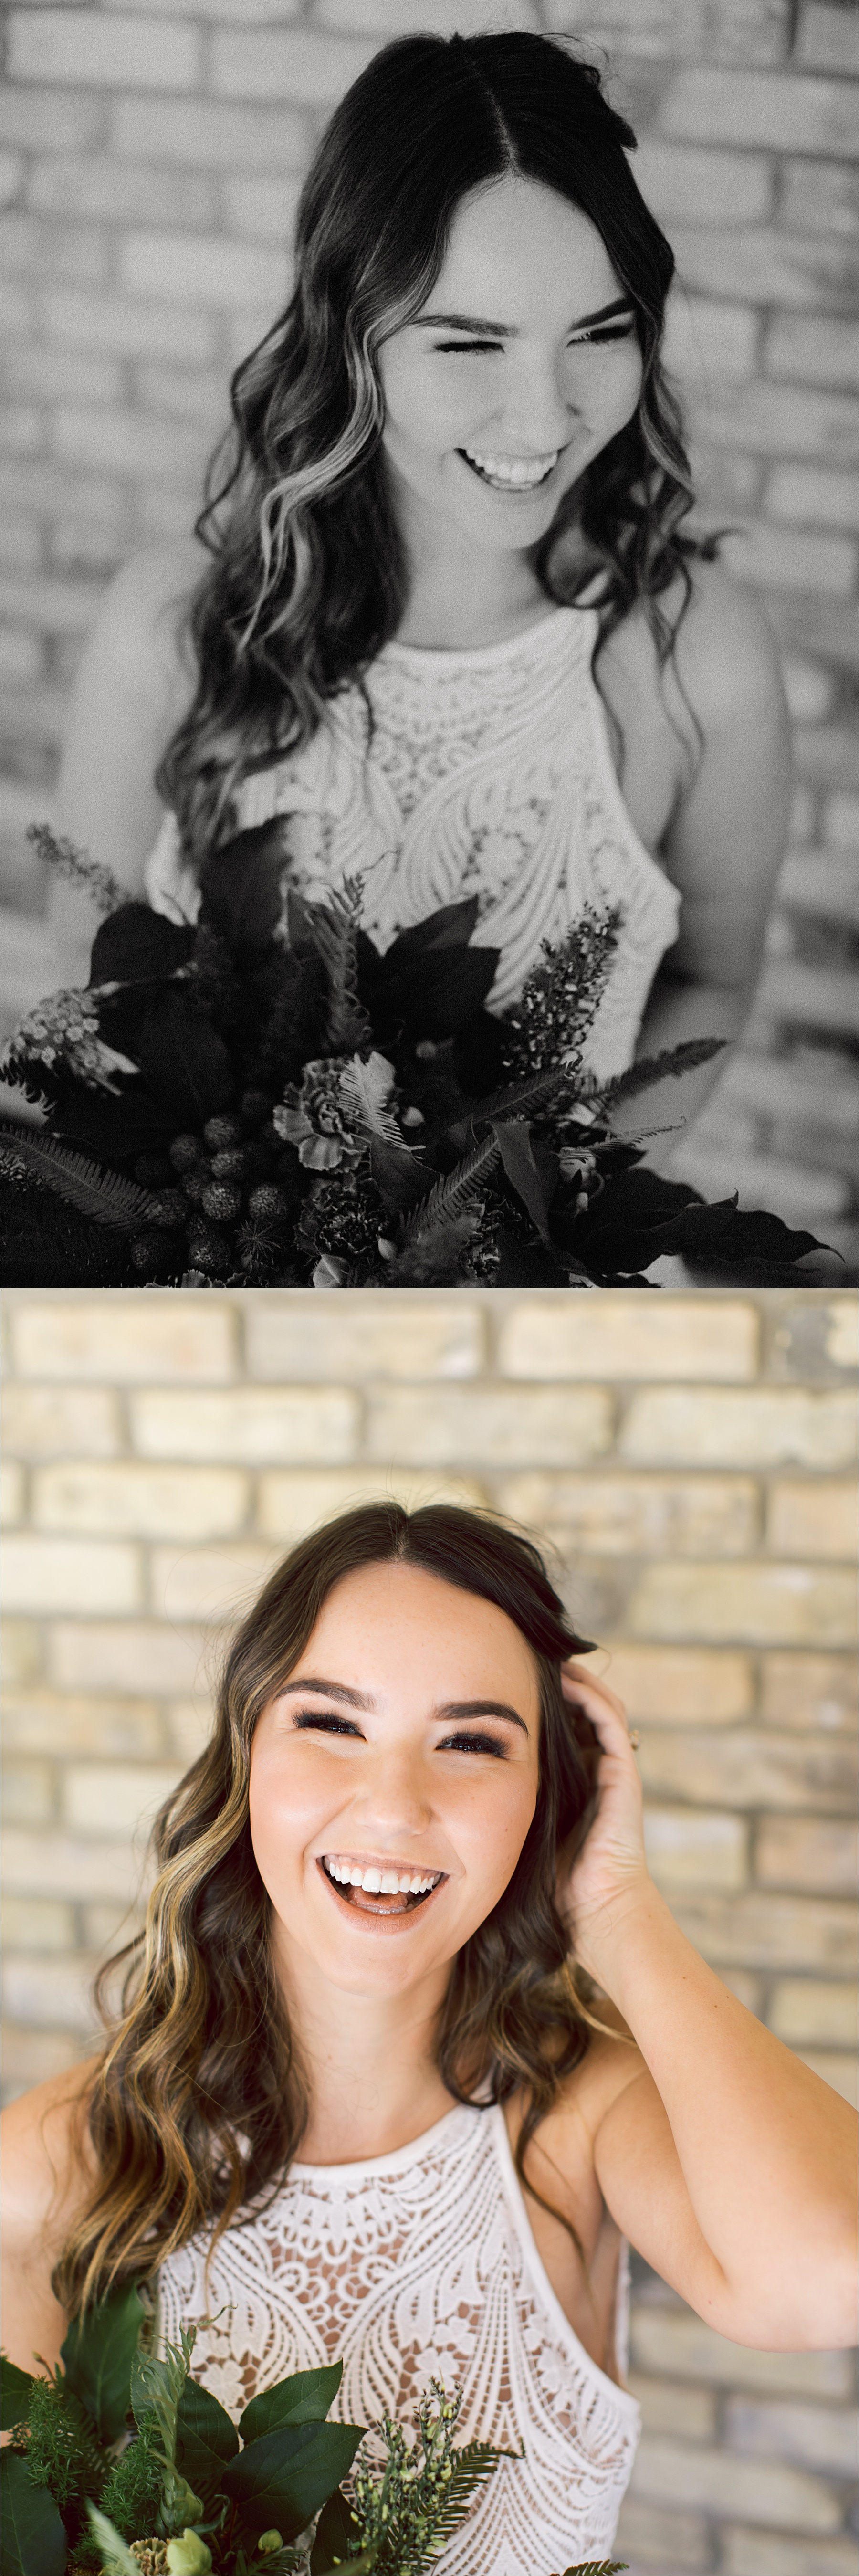 Florals:  Wed and Willow  / Dress:  Miss Ruby Bridal Boutique  / MUA:  Kelly Schubel  / Hairstyling:  Alysce Marie